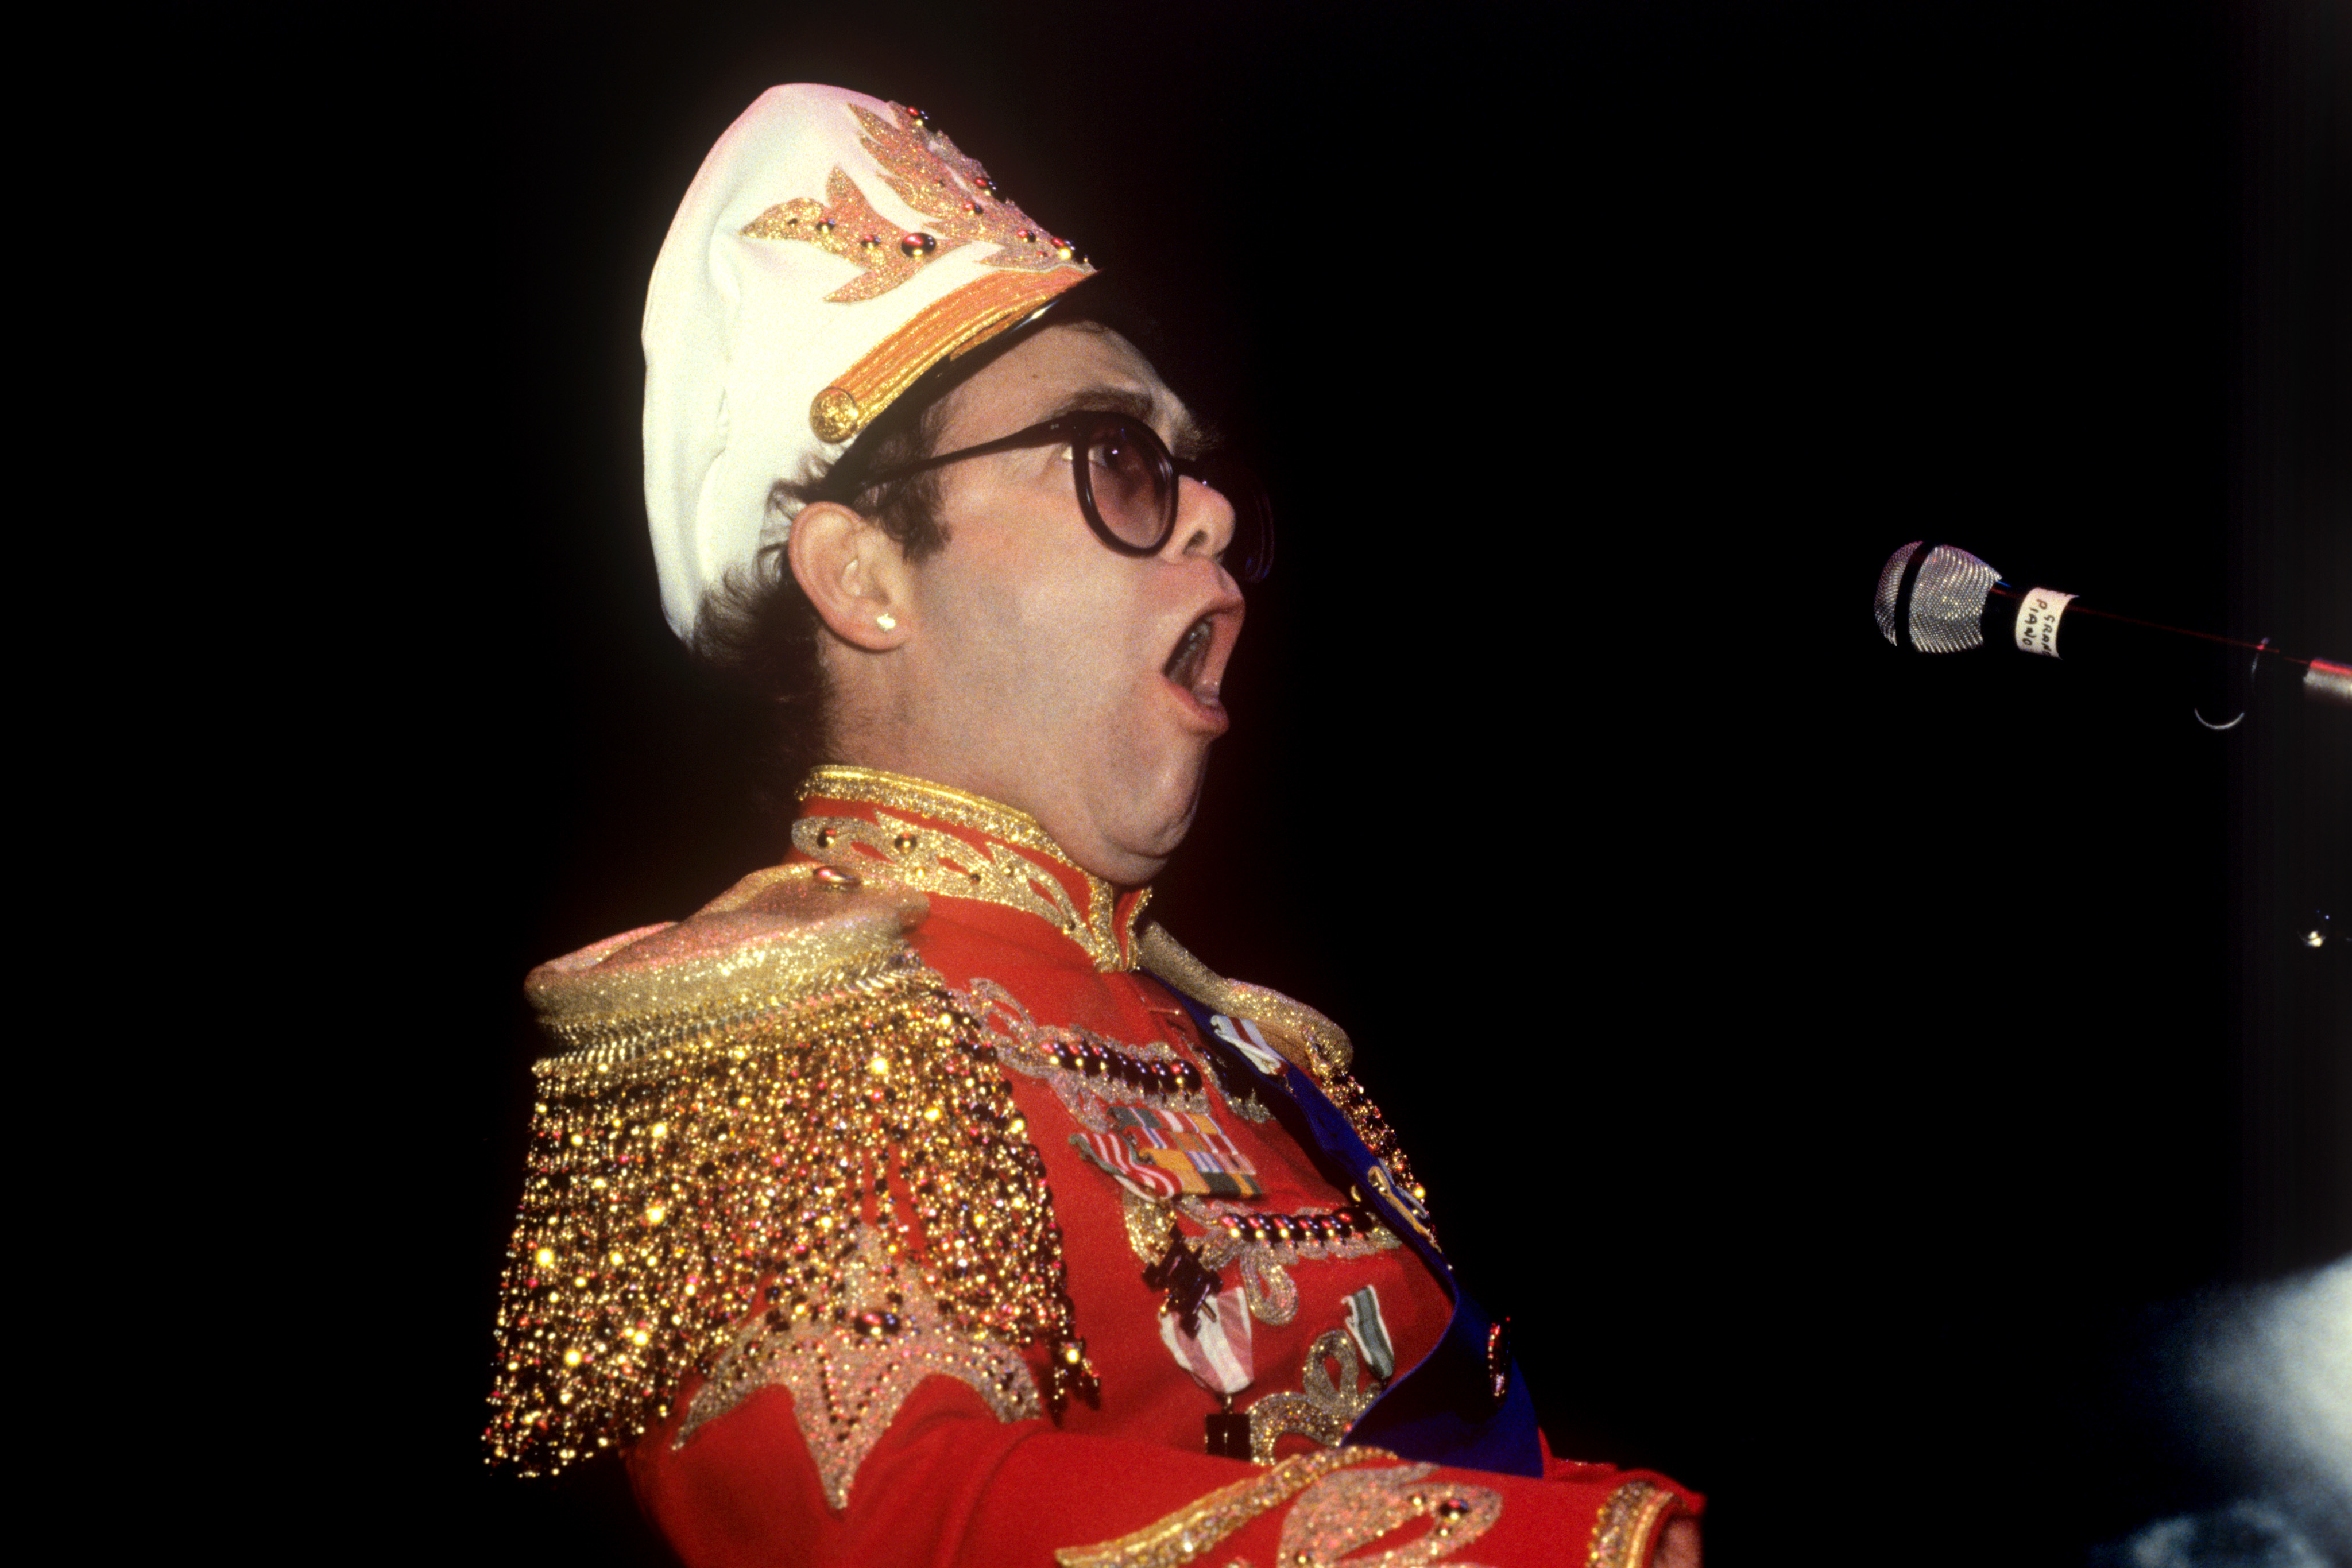 The Ruritanian look for the pop singer Elton John, showing his new uniform in London, that will be his hallmark for his British tour.